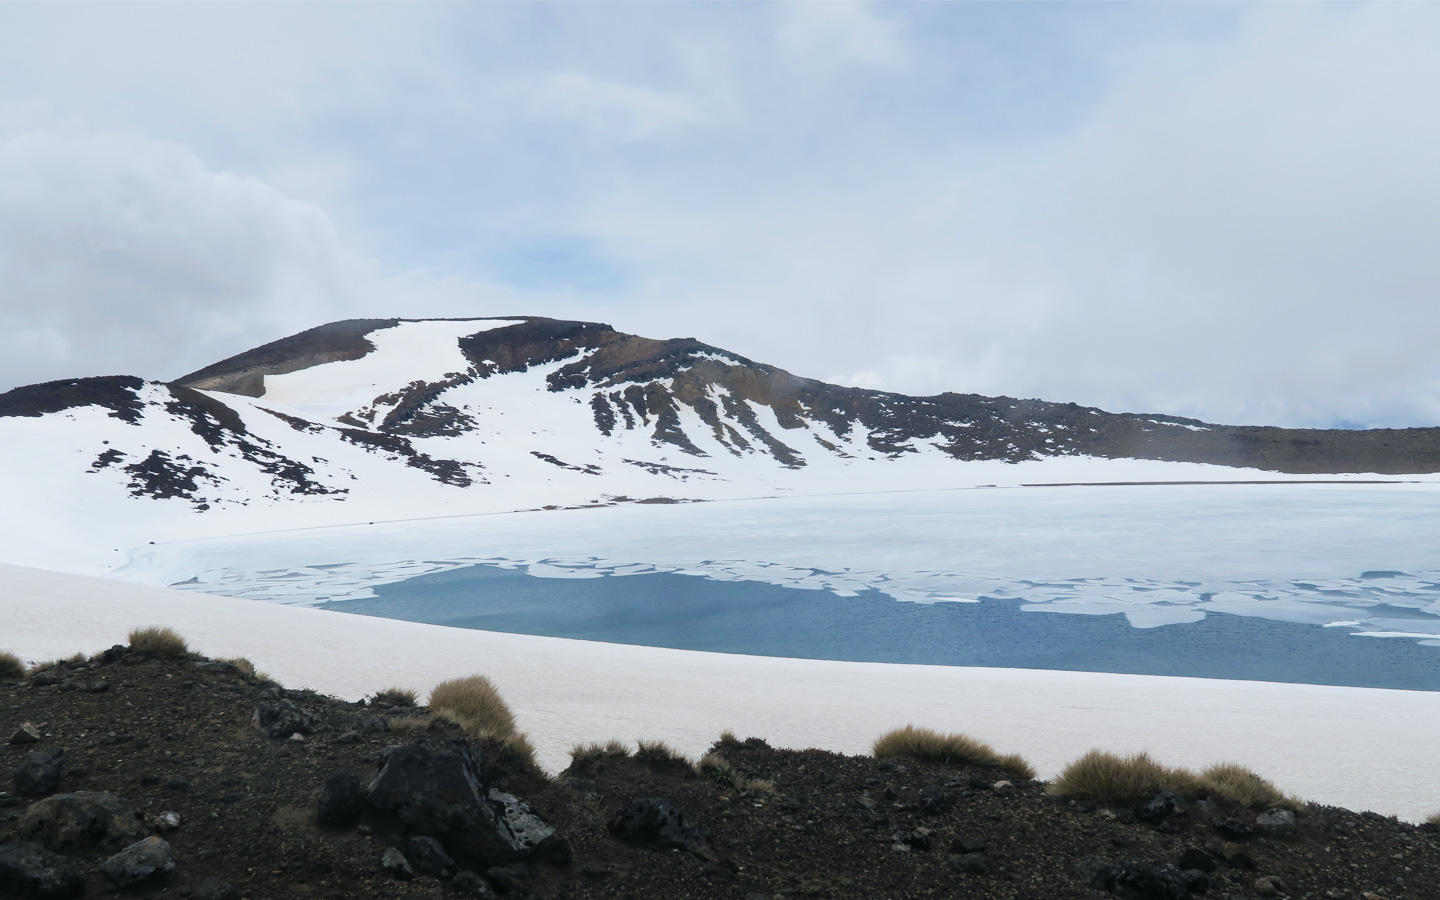 frozen lake with mountain up mount tongariro in new zealand